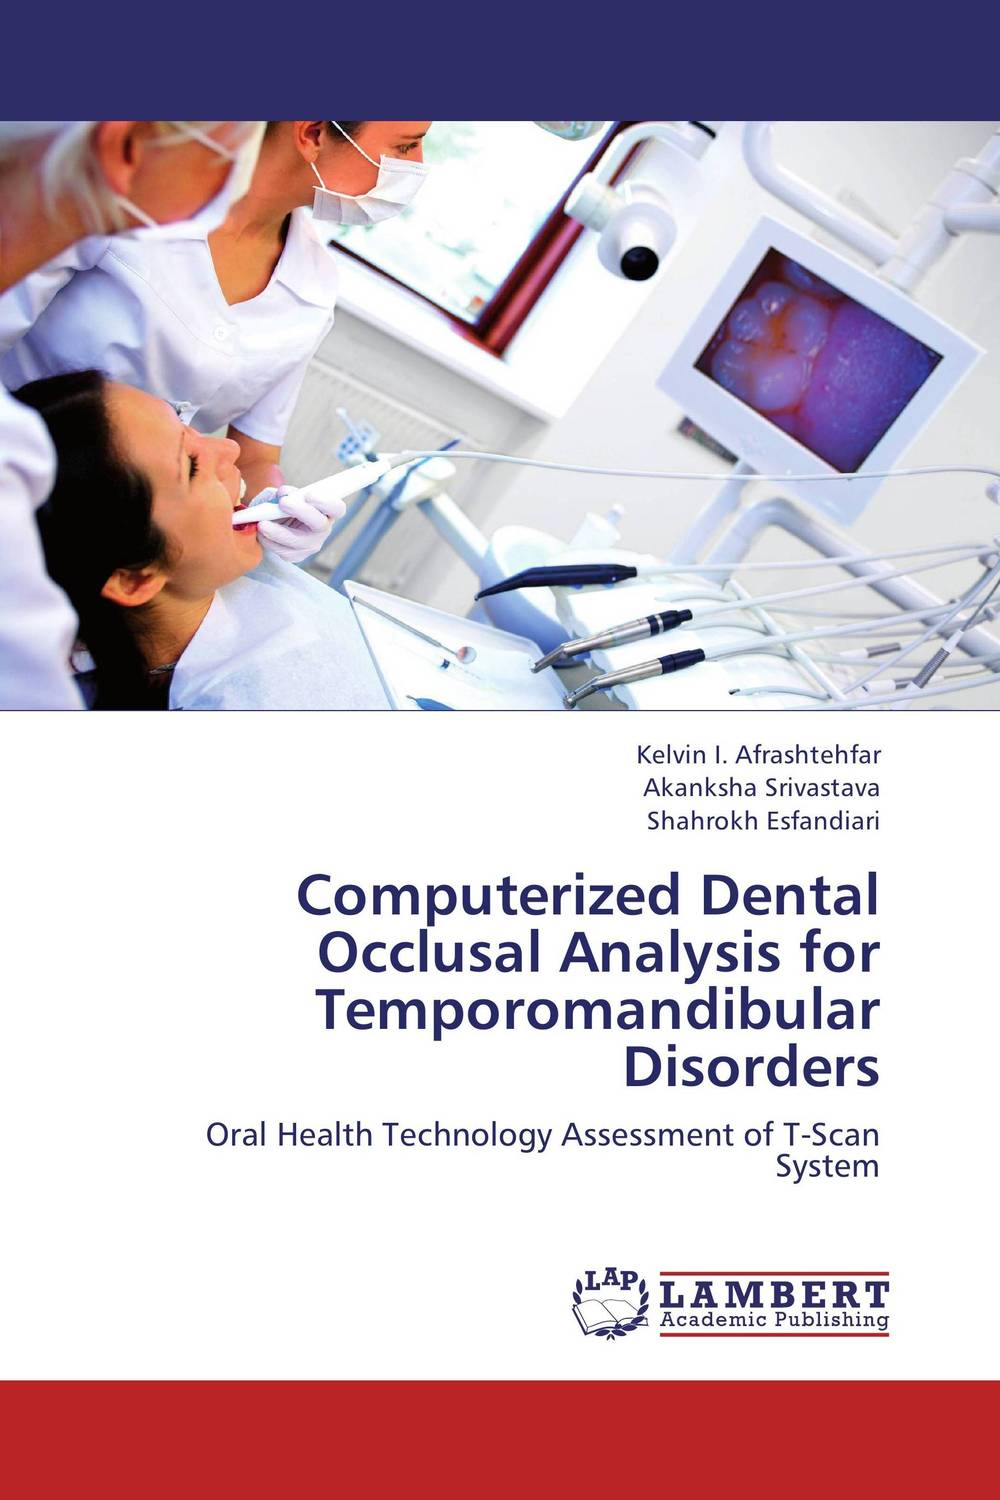 Computerized Dental Occlusal Analysis for Temporomandibular Disorders 1pc zirkon zahn system dental milling burs and stylus 1l 2l 4l to be chosen